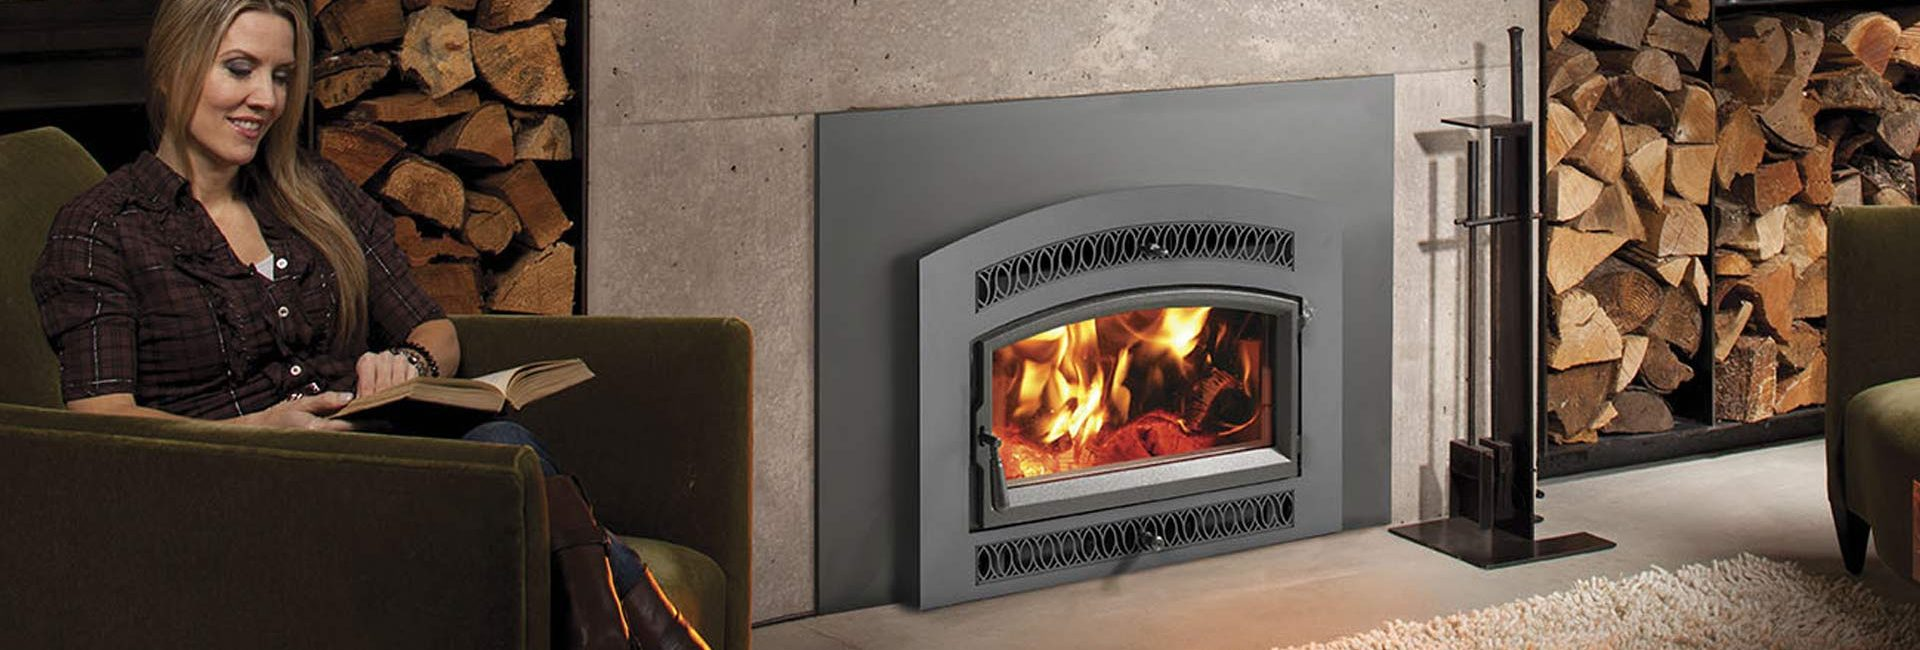 Woman reading by fireplace